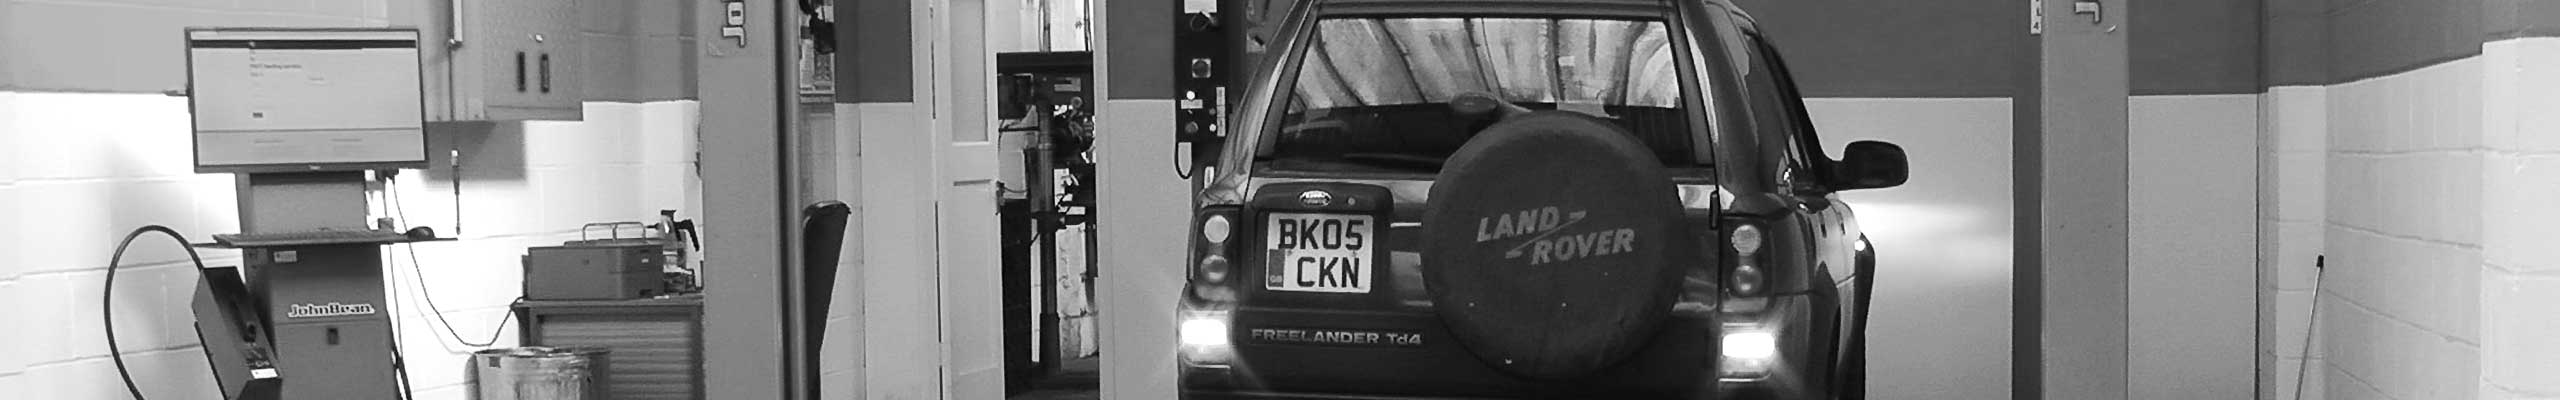 very classy black and white expert image of excels mot testing bay with a land rover part way through testing